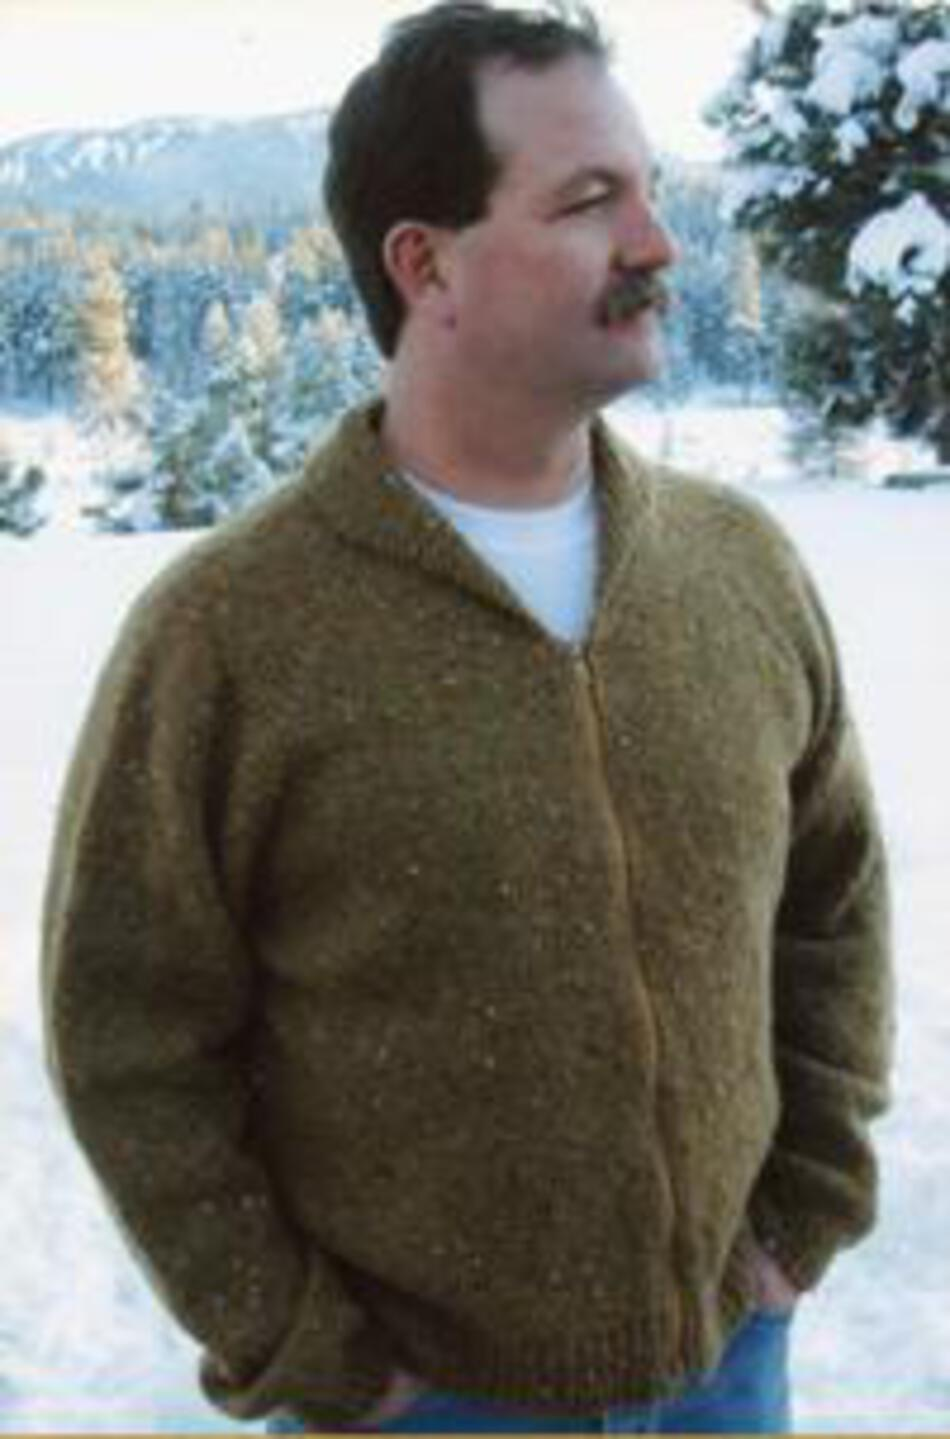 ece82e338 Neckdown Cardigan for Men by Knitting Pure and Simple Knitting Pattern